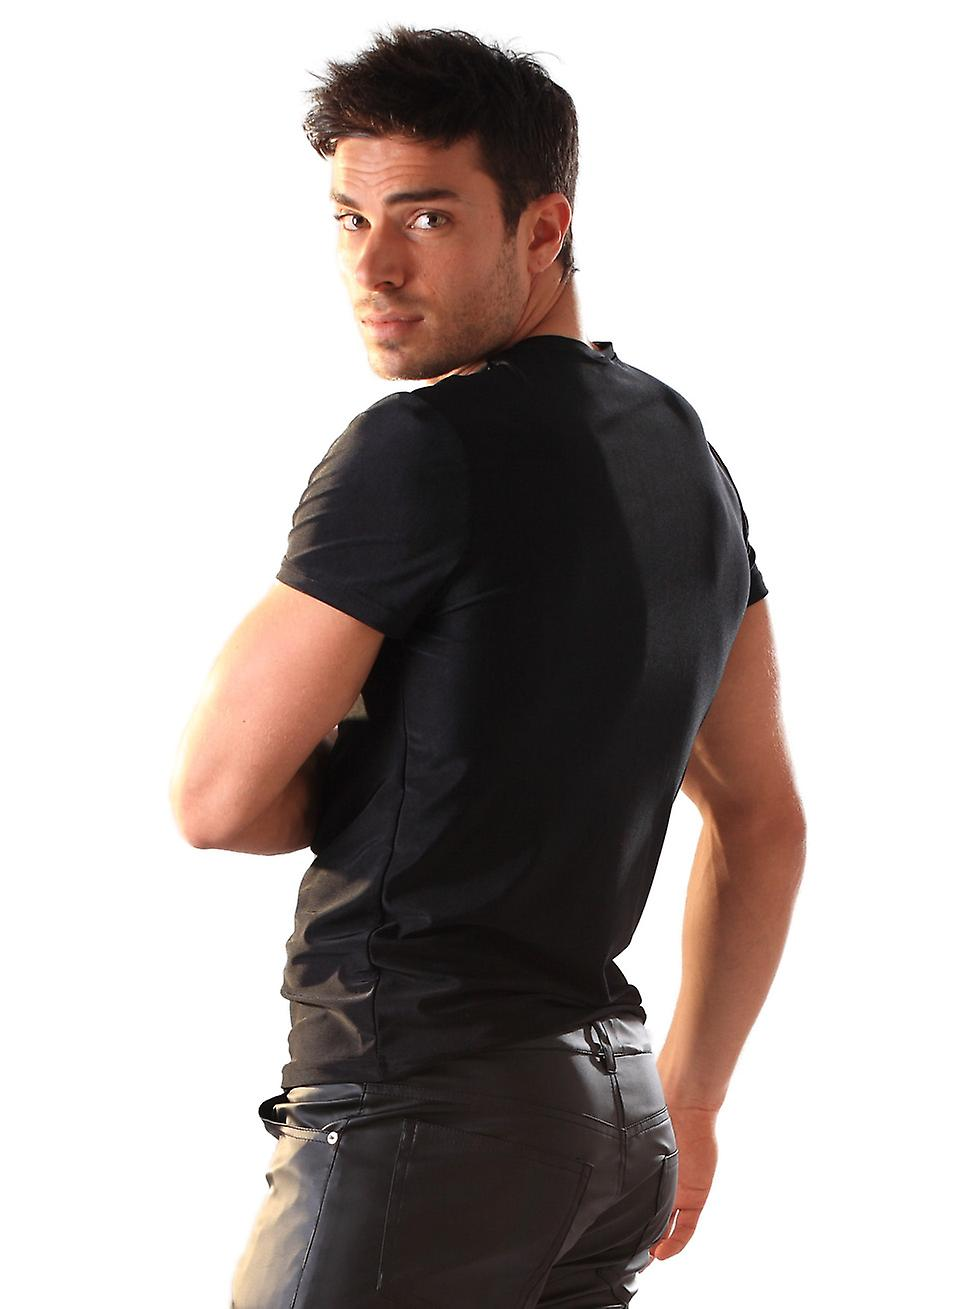 Skin Two Clothing Men's T Shirt Black Lycra Sexy Stretch Stud Outfit Style